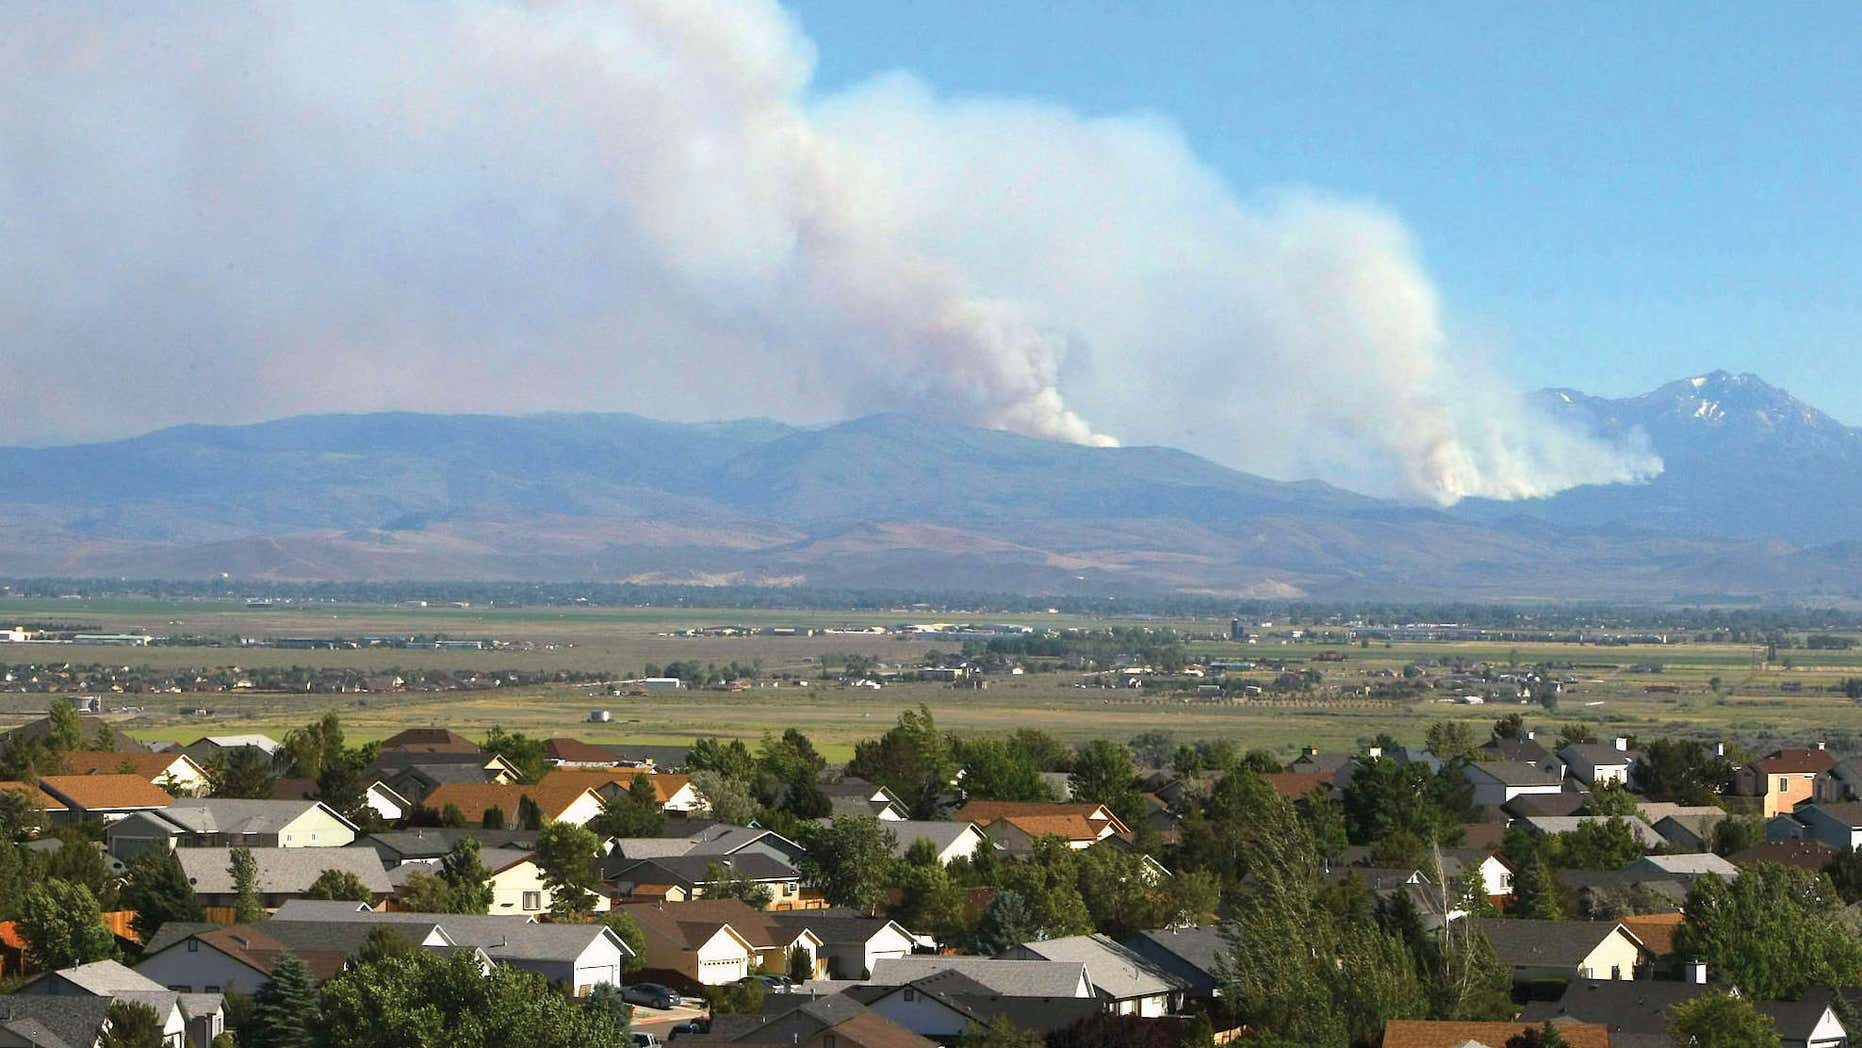 June 22, 2015: Smoke from the Washington Fire rises over the mountains in Markleeville, Calif.